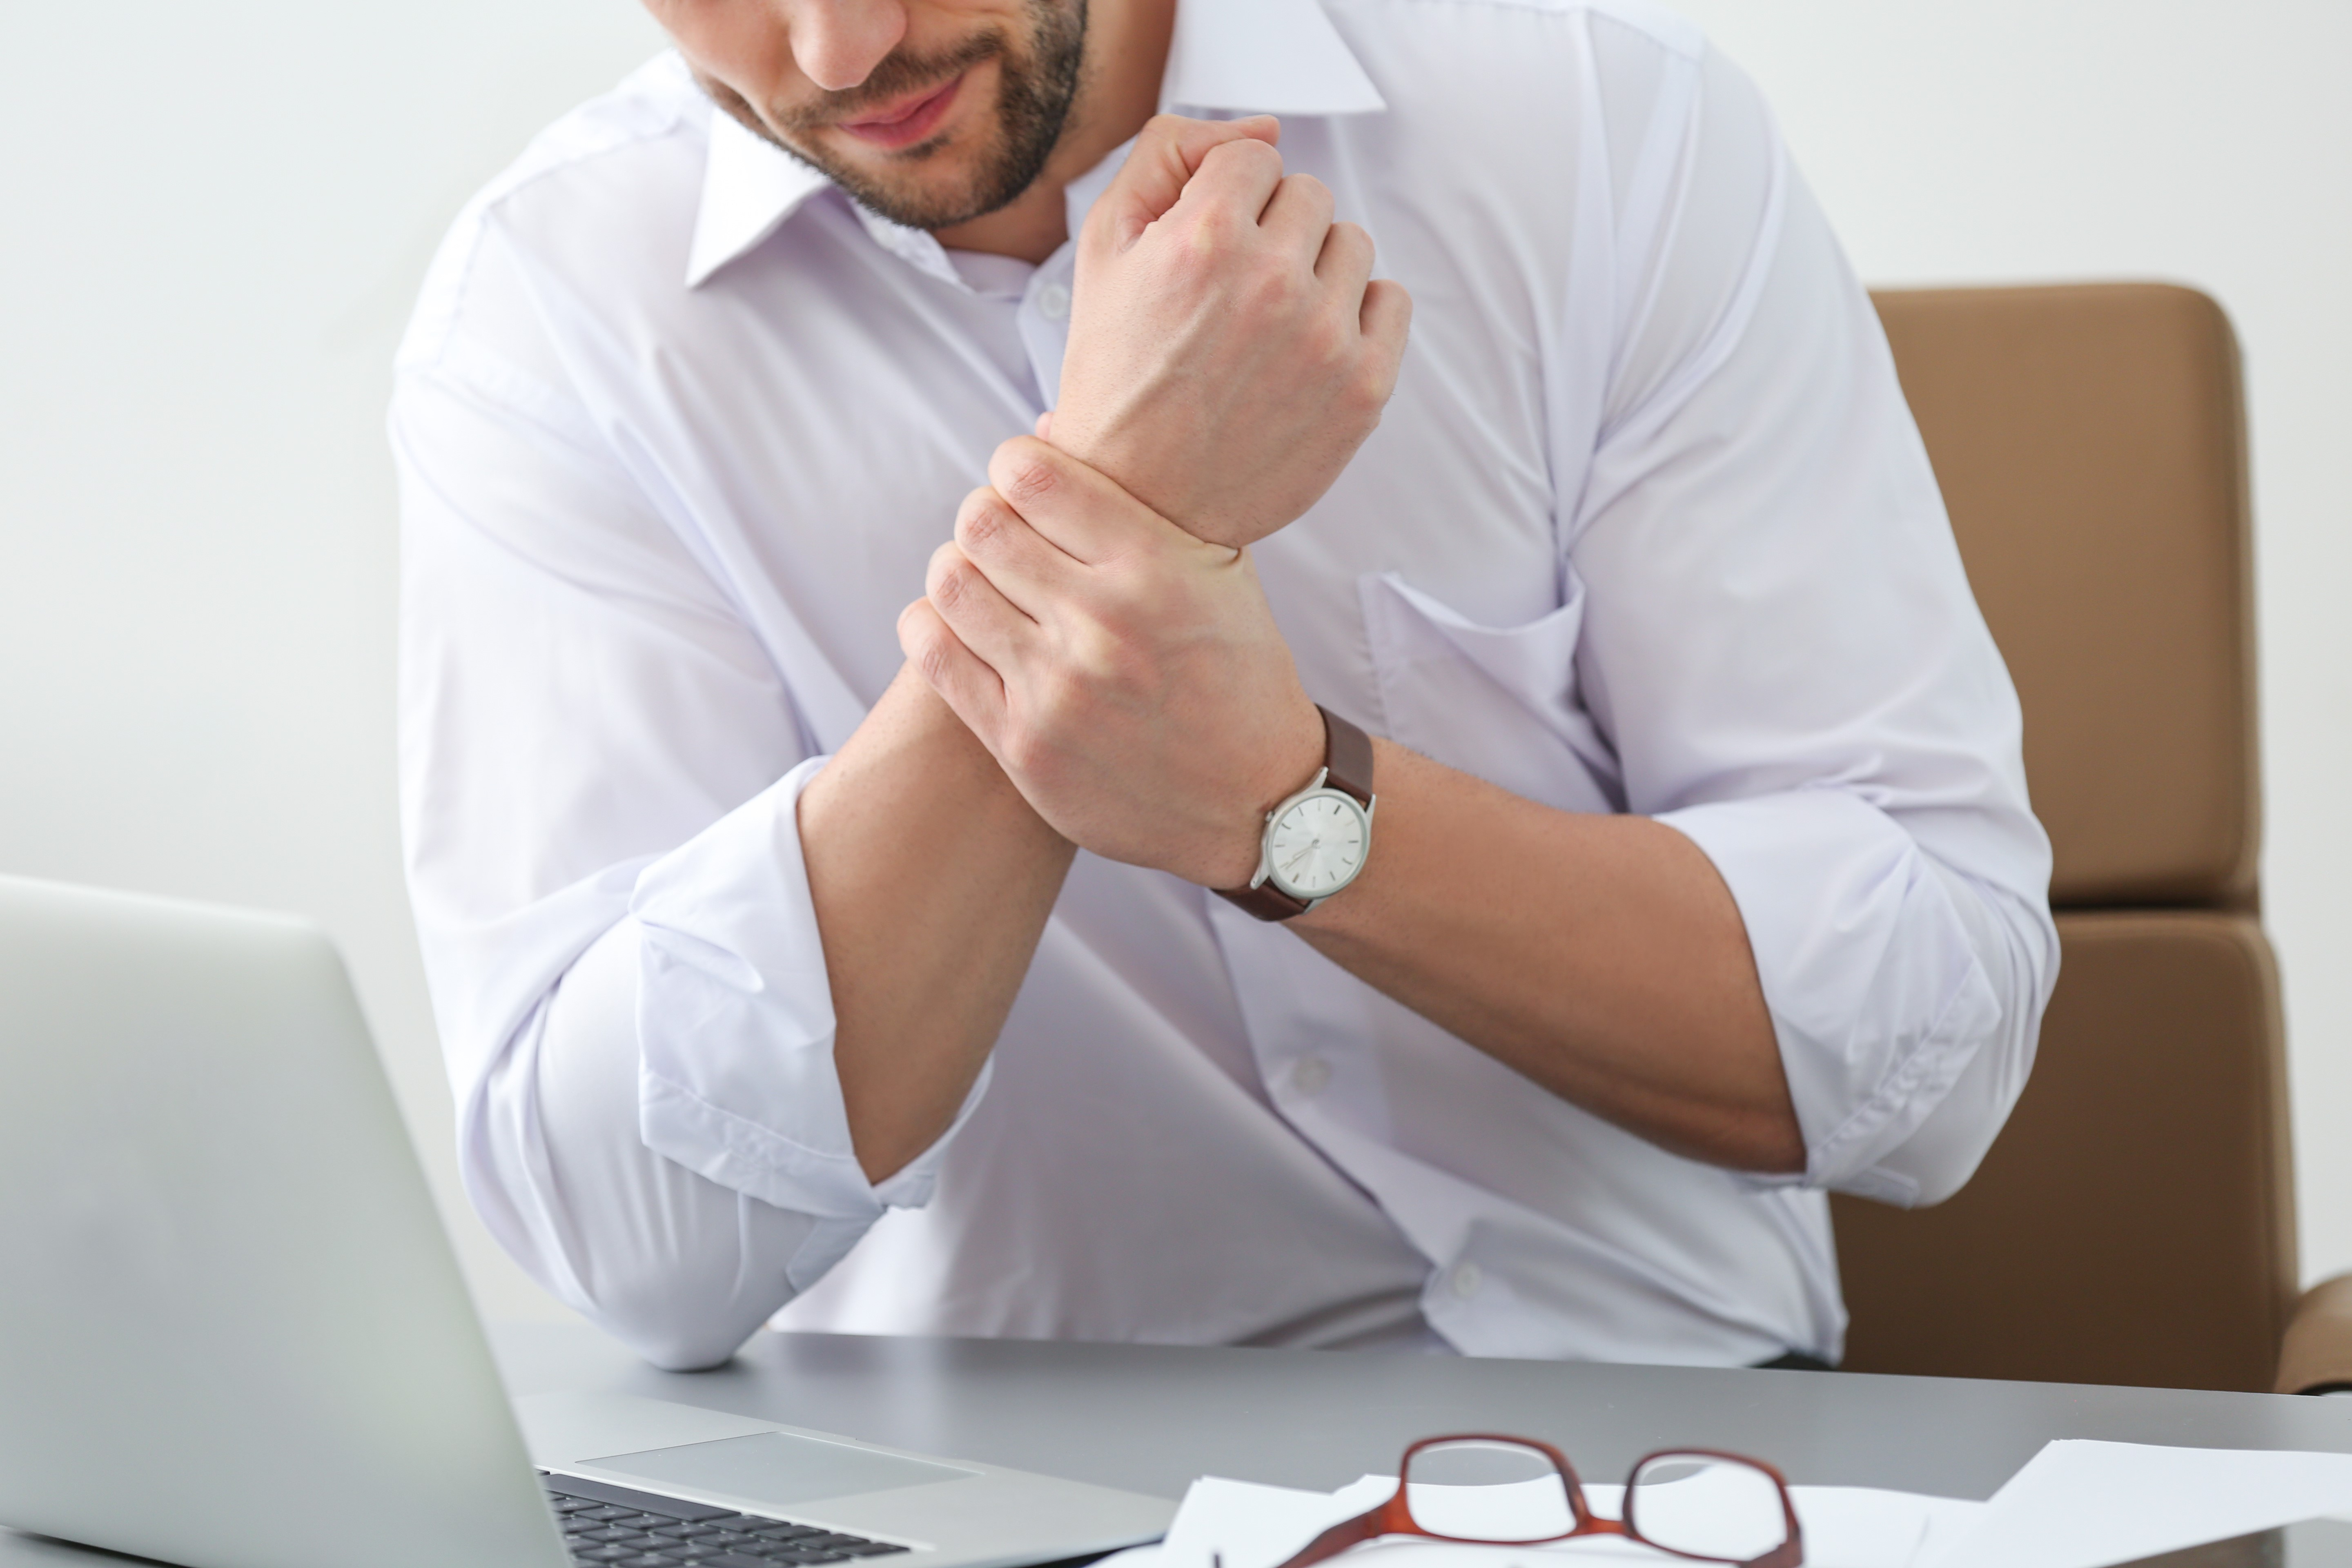 man grabbing hurt wrist due to a repetitive stress injury